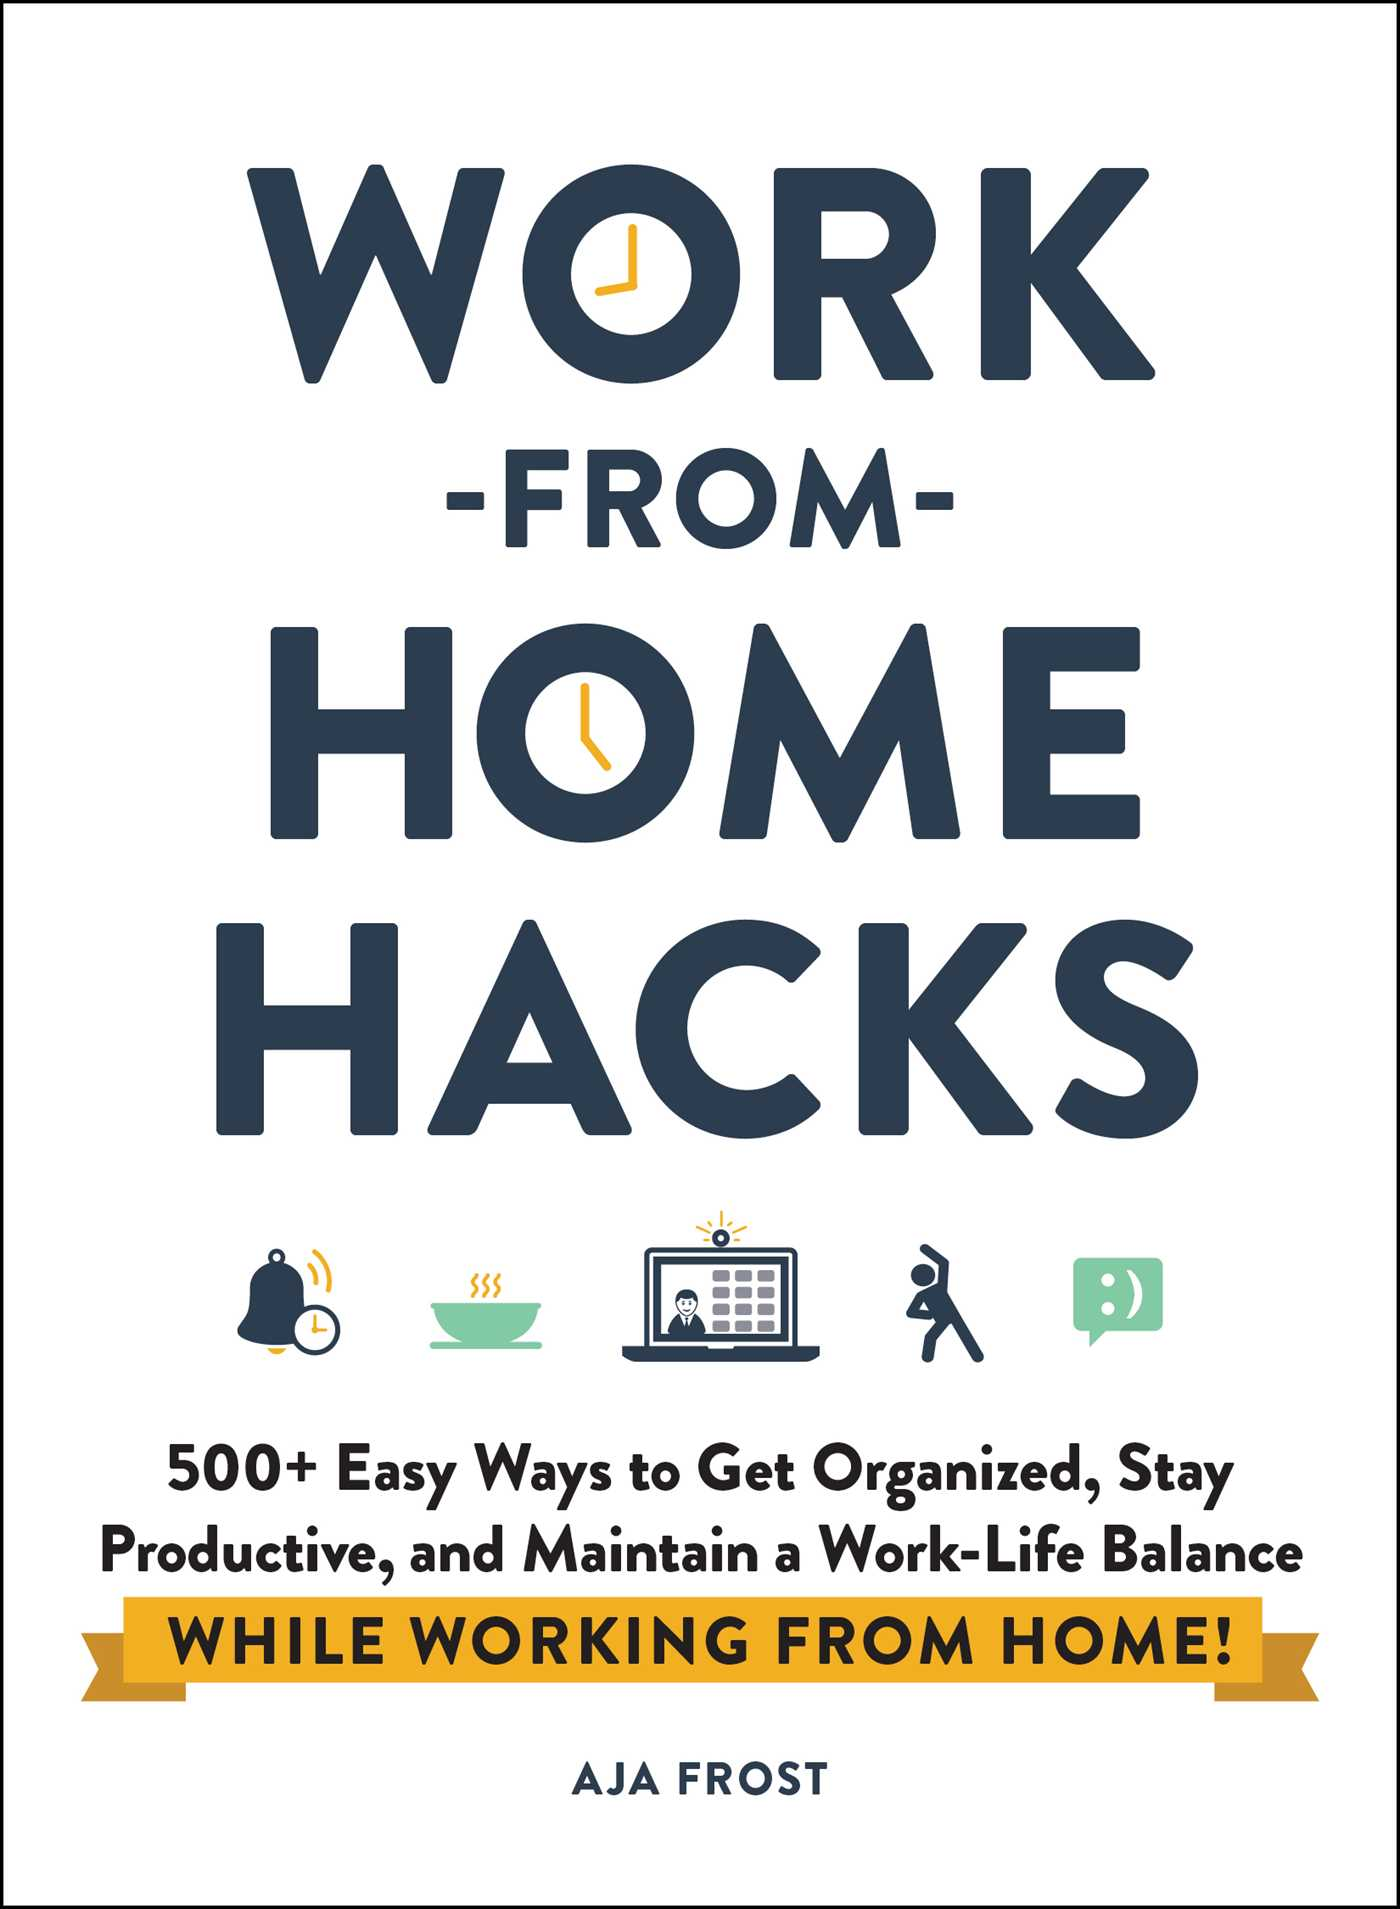 Work-from-Home Hacks 500+ Easy Ways to Get Organized, Stay Productive, and Maintain a Work-Life Balance While Working from Home!